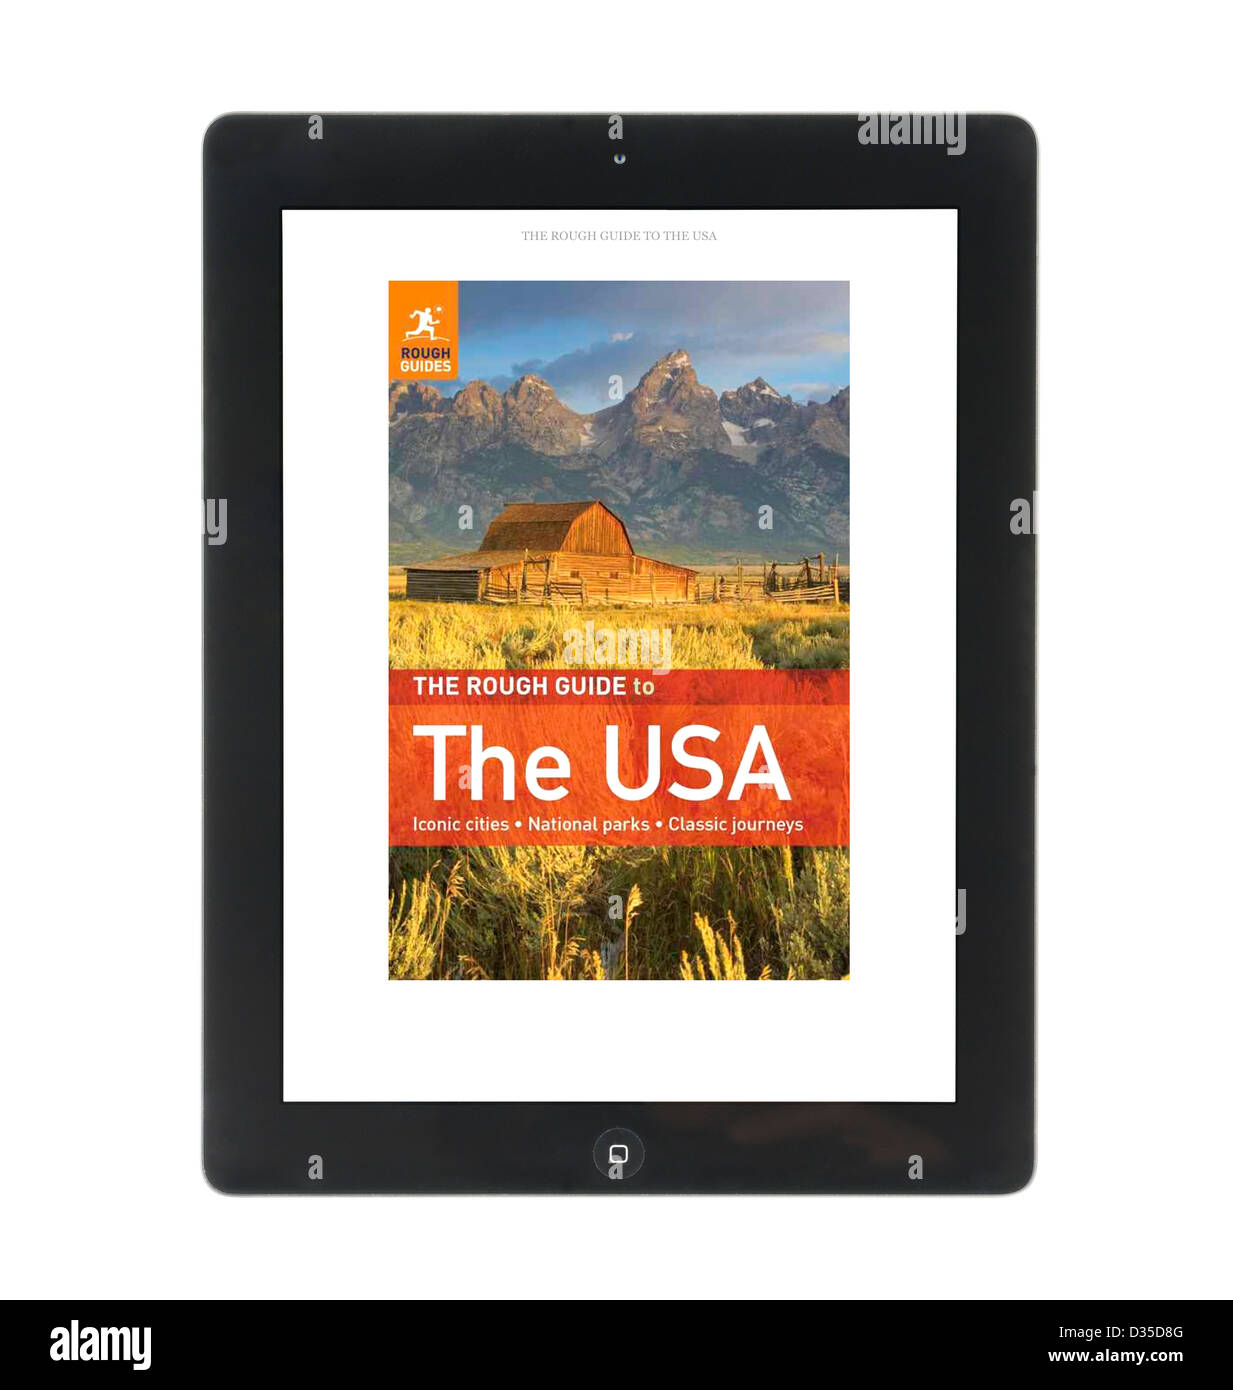 Reading a Rough Guide travel book with the Kindle app on an Apple iPad 4th genration retina display tablet computer - Stock Image